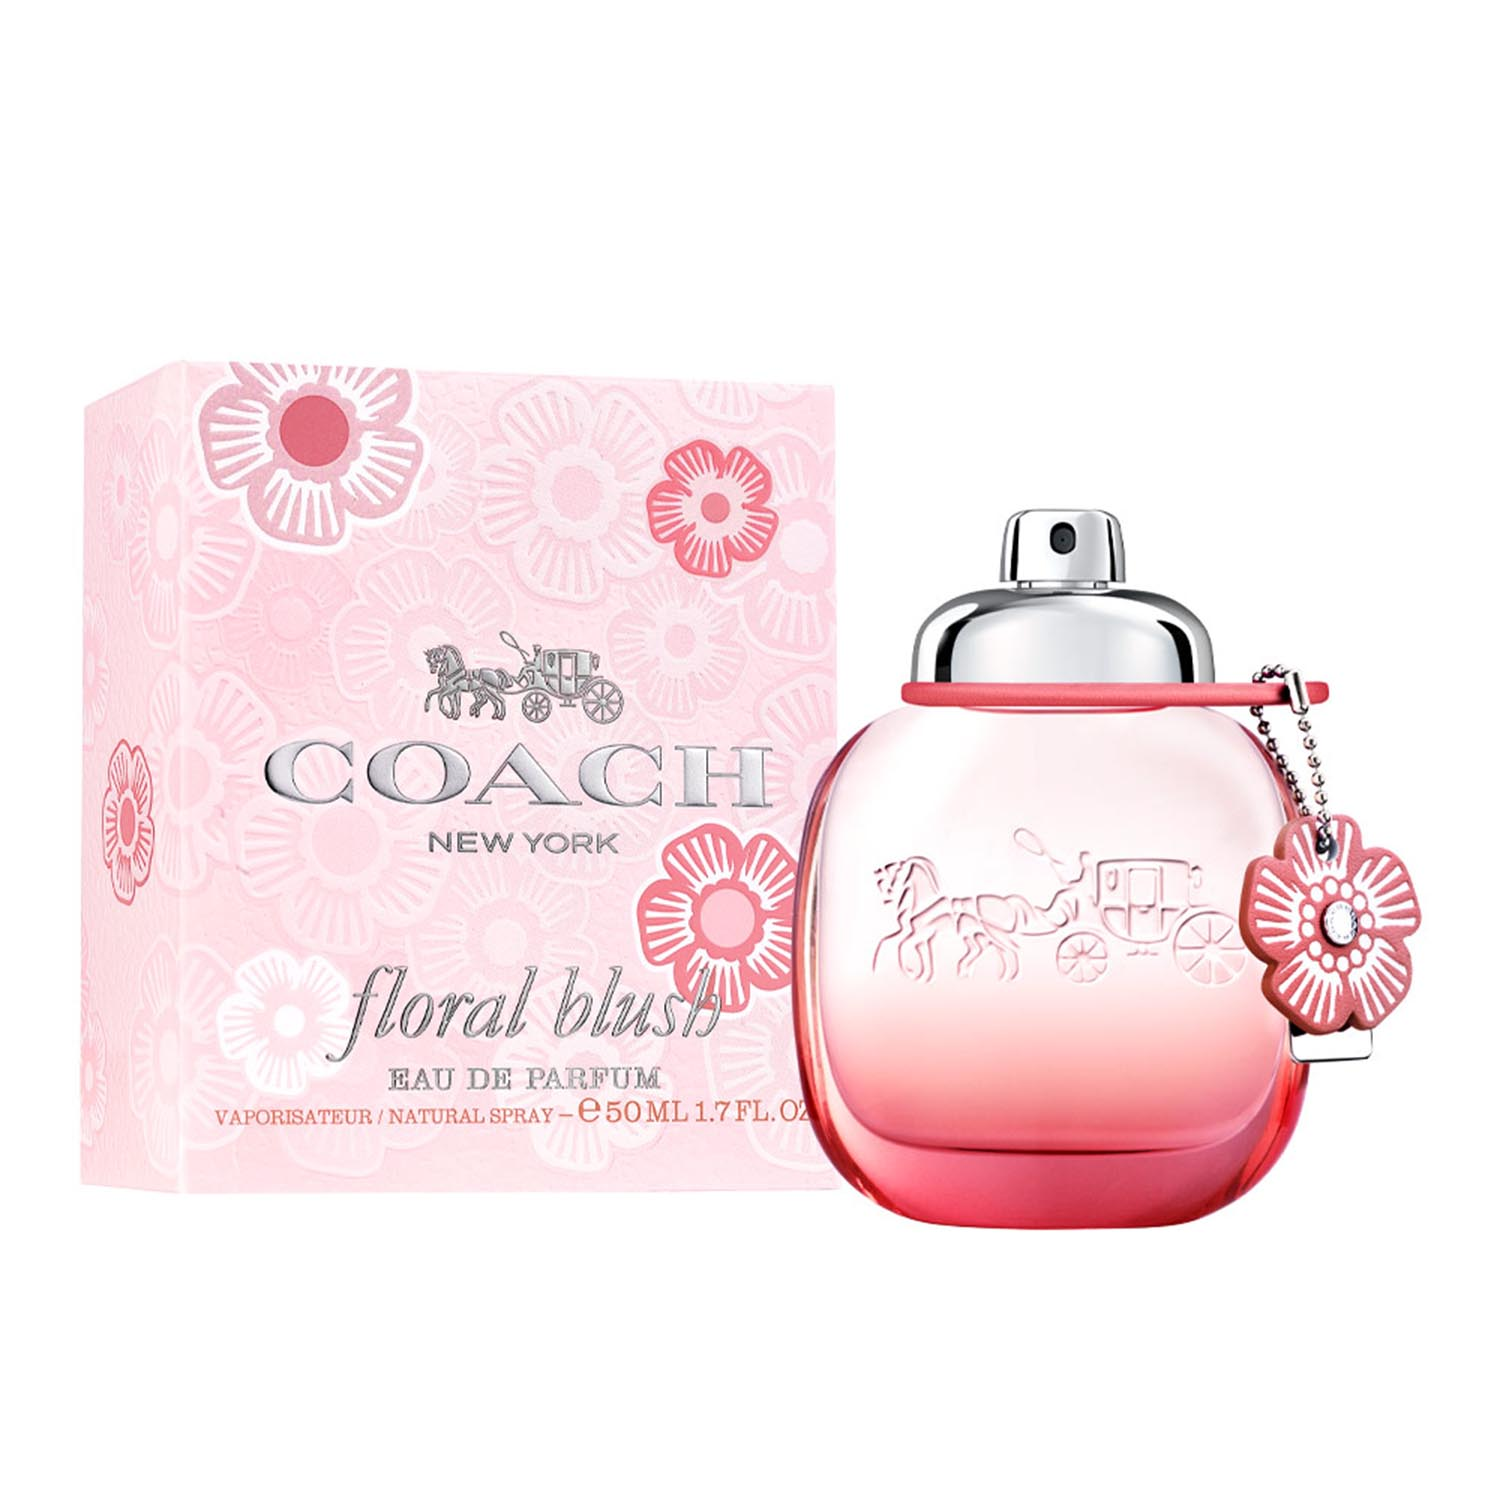 Coach new york floral blush eau de parfum 50ml